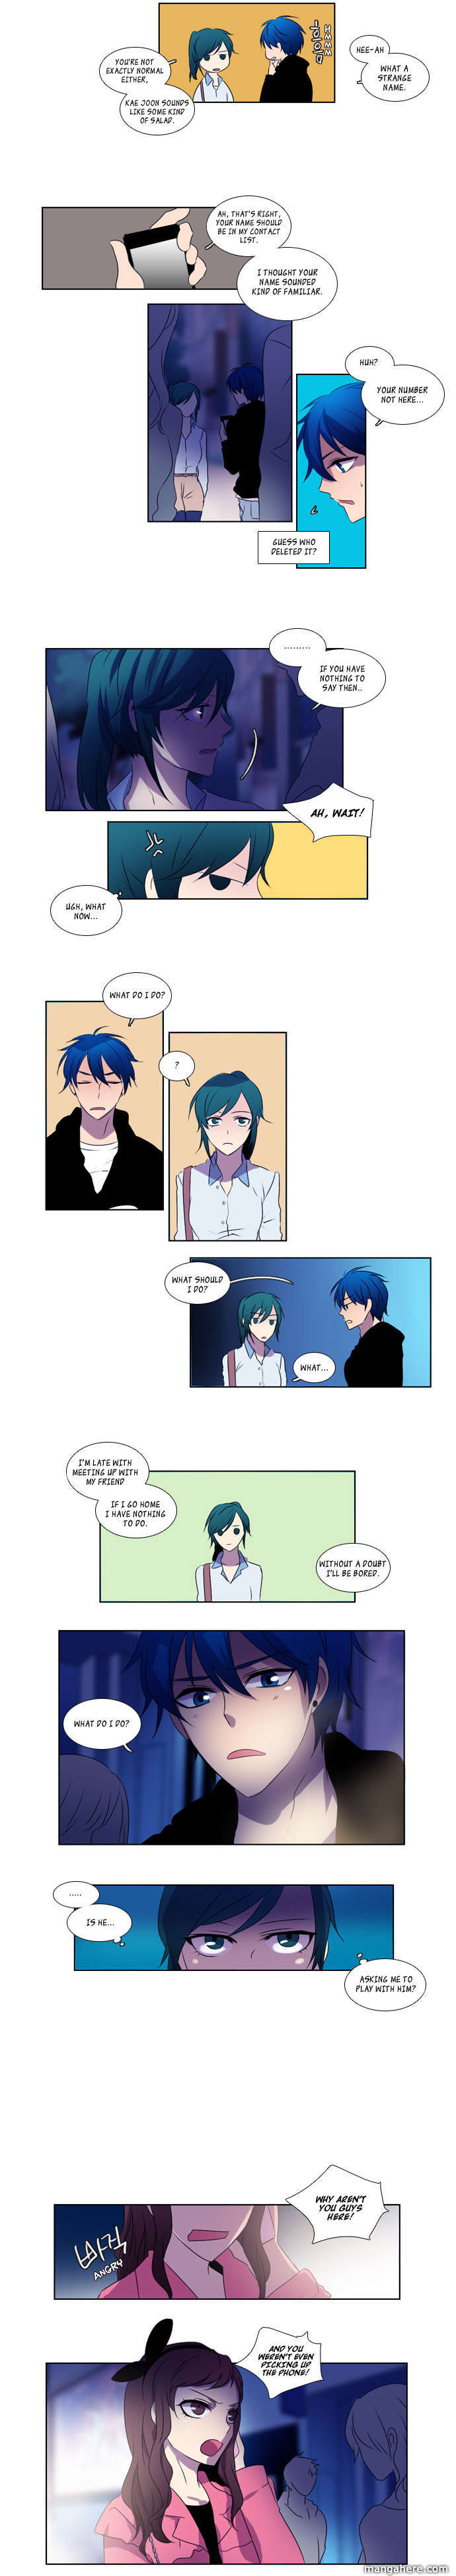 Wonted 14 Page 2